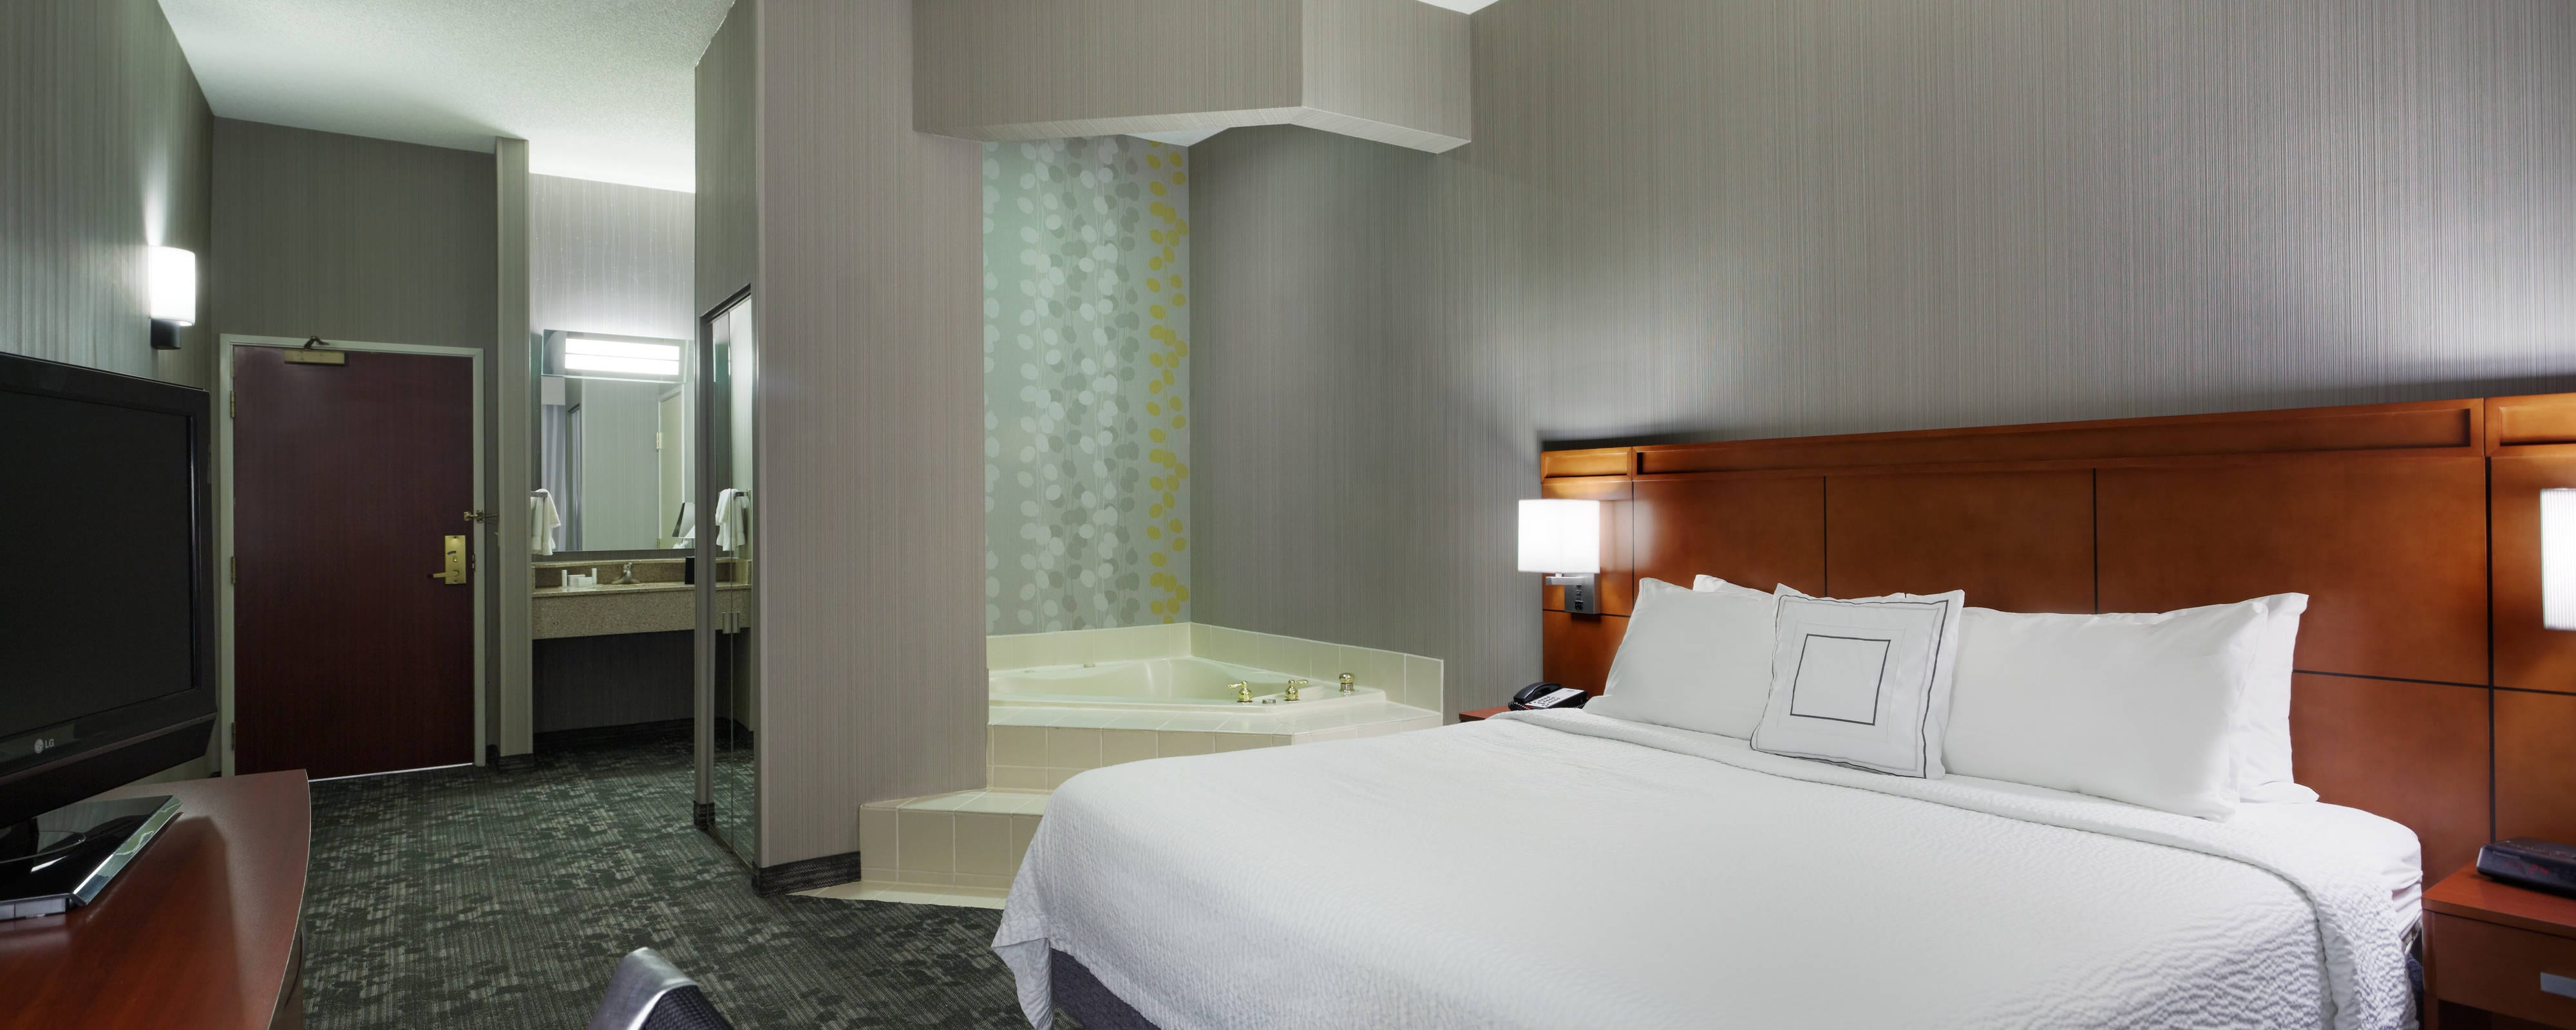 king spa guest room Chicago